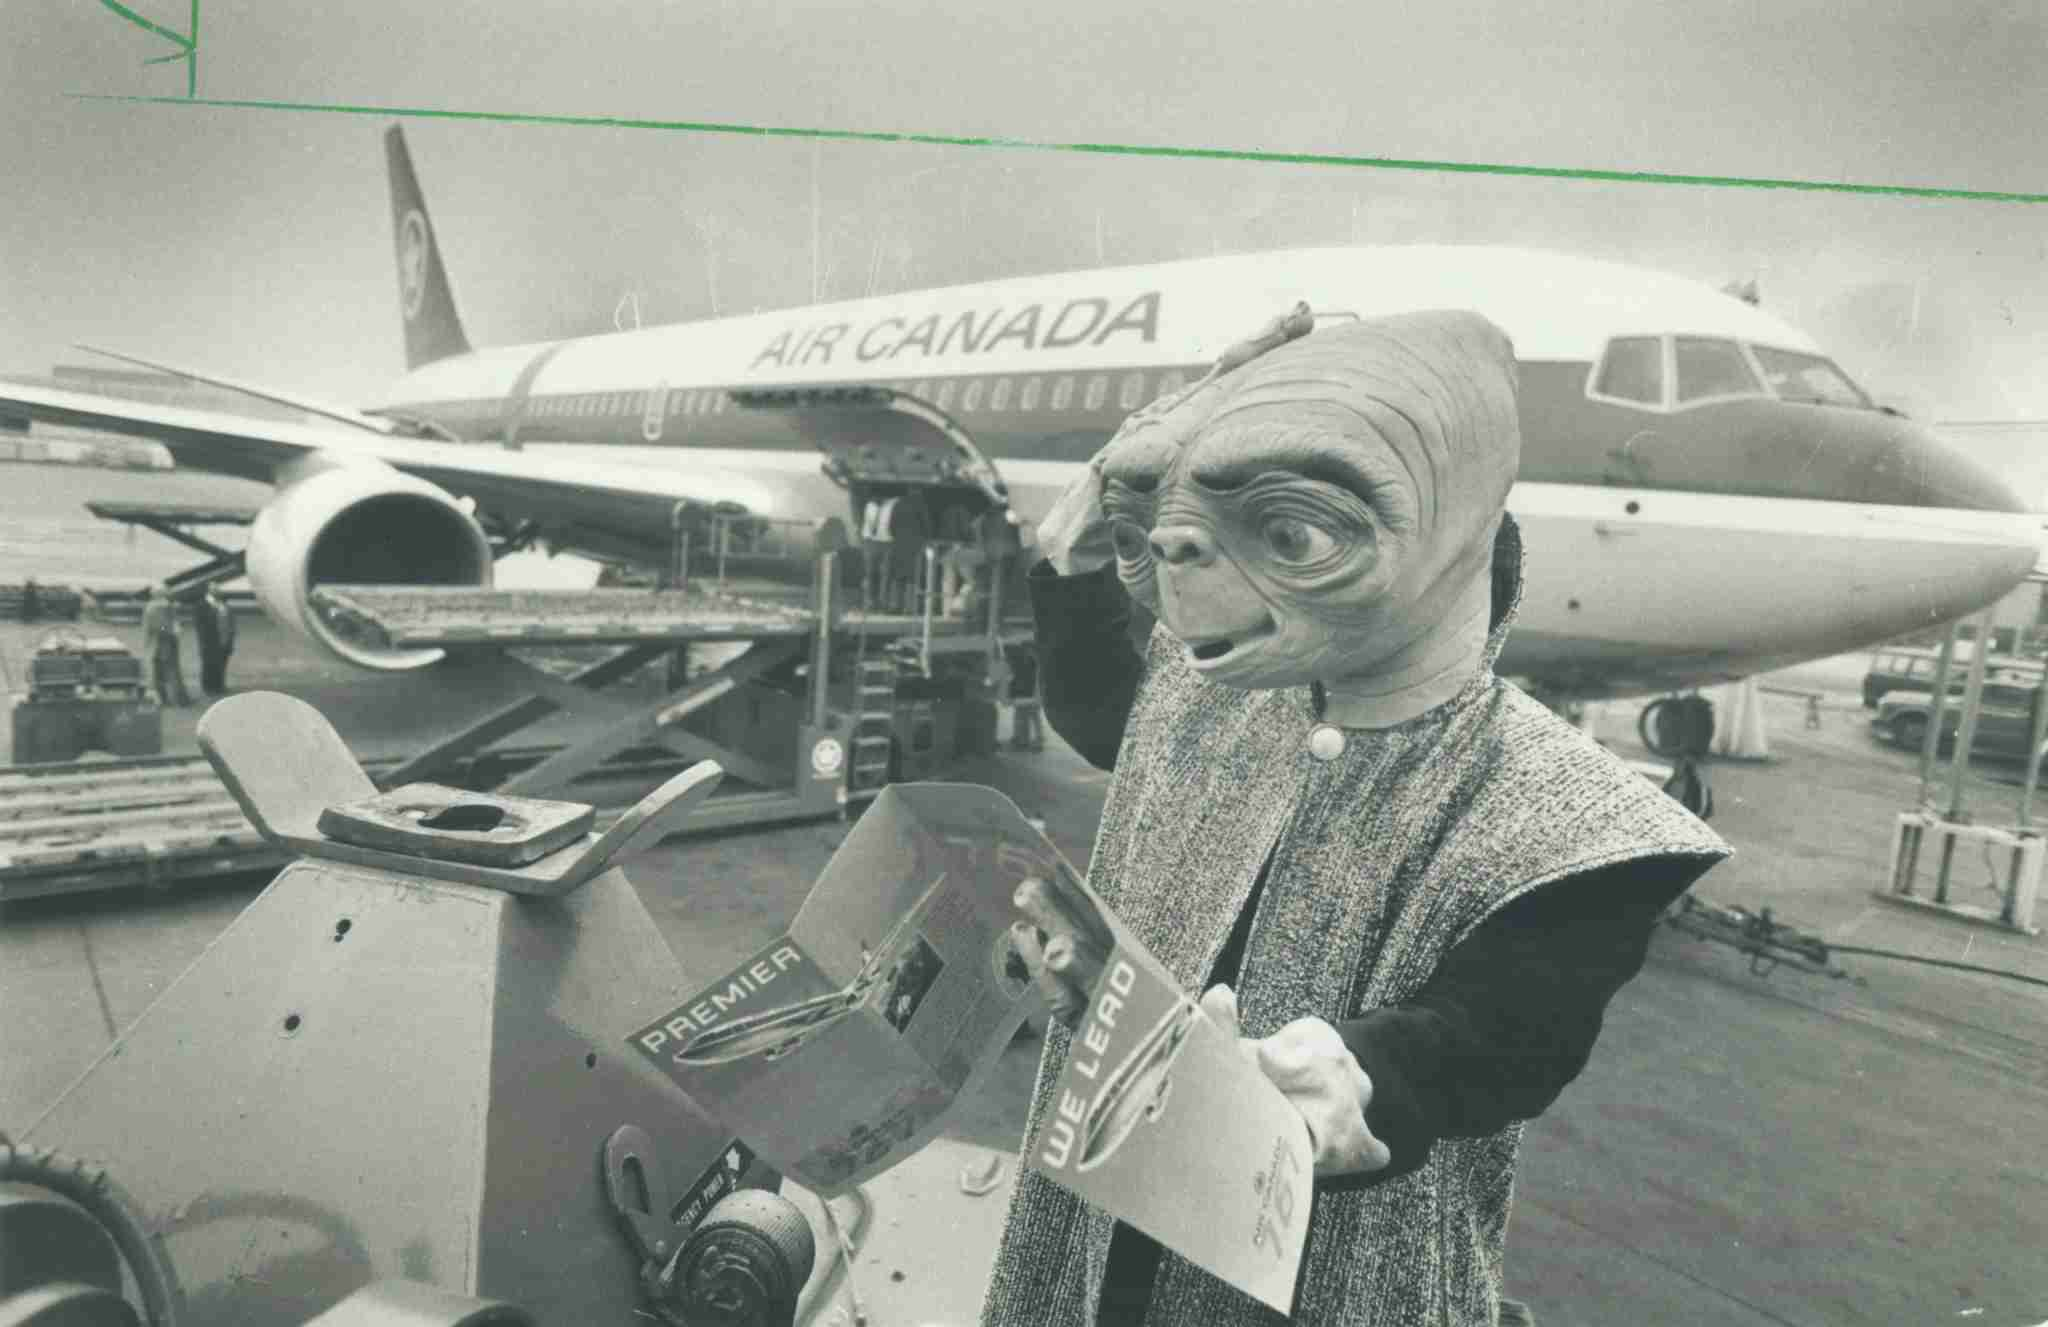 CANADA - DECEMBER 02: World traveller: E. T. studies the information kit for Air Canada